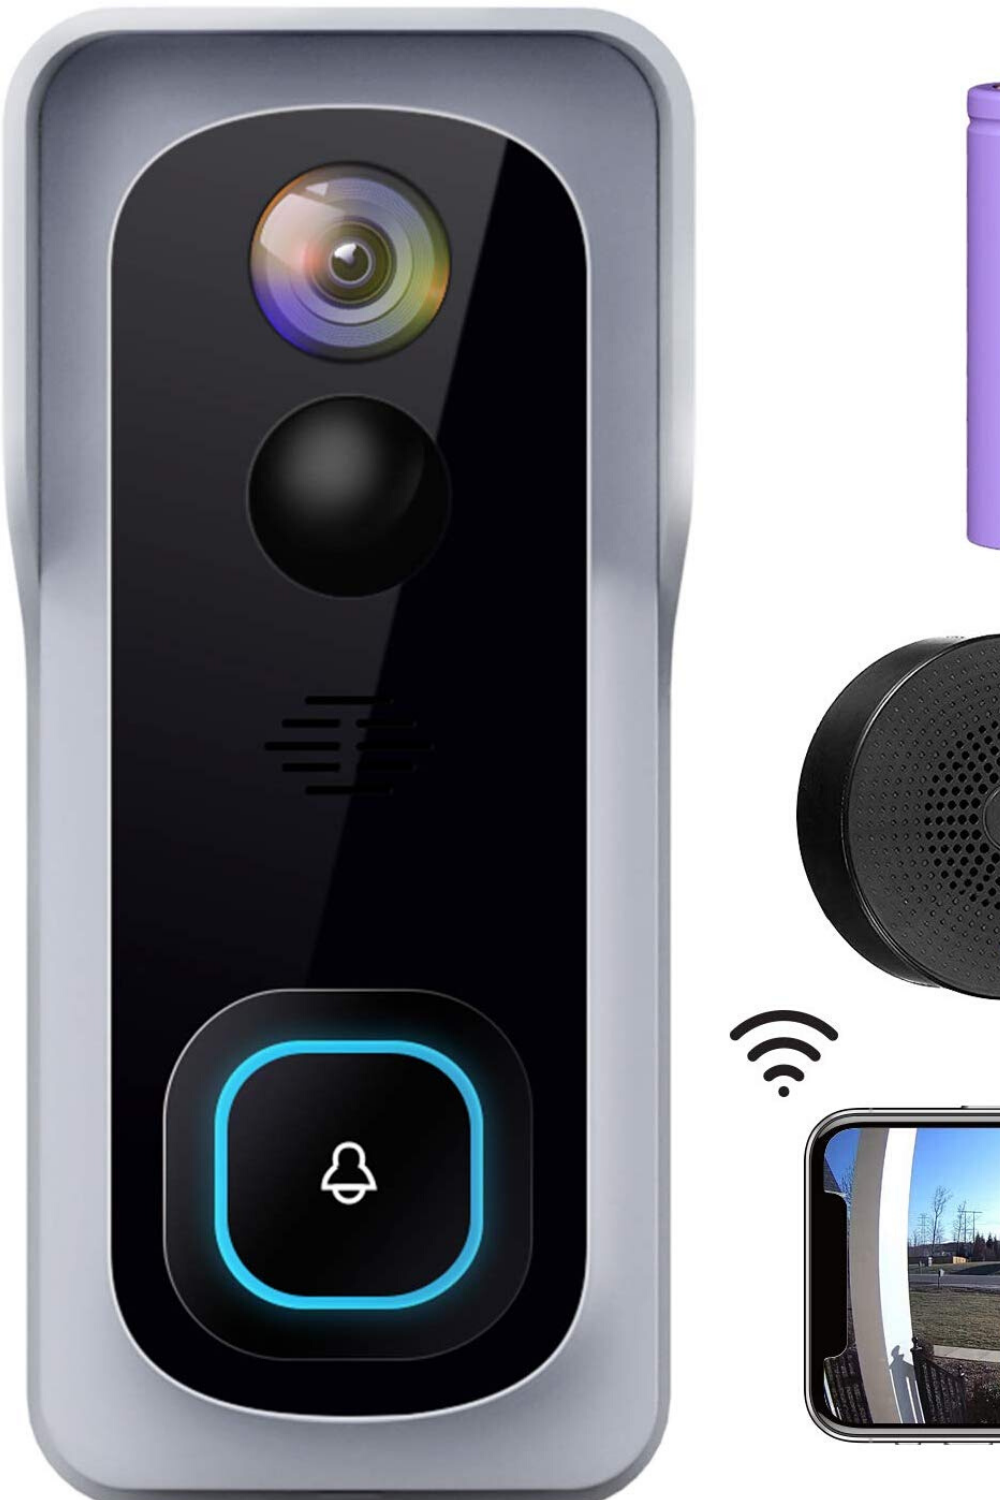 wifi video doorbell camera review : 100% Wireless and ...